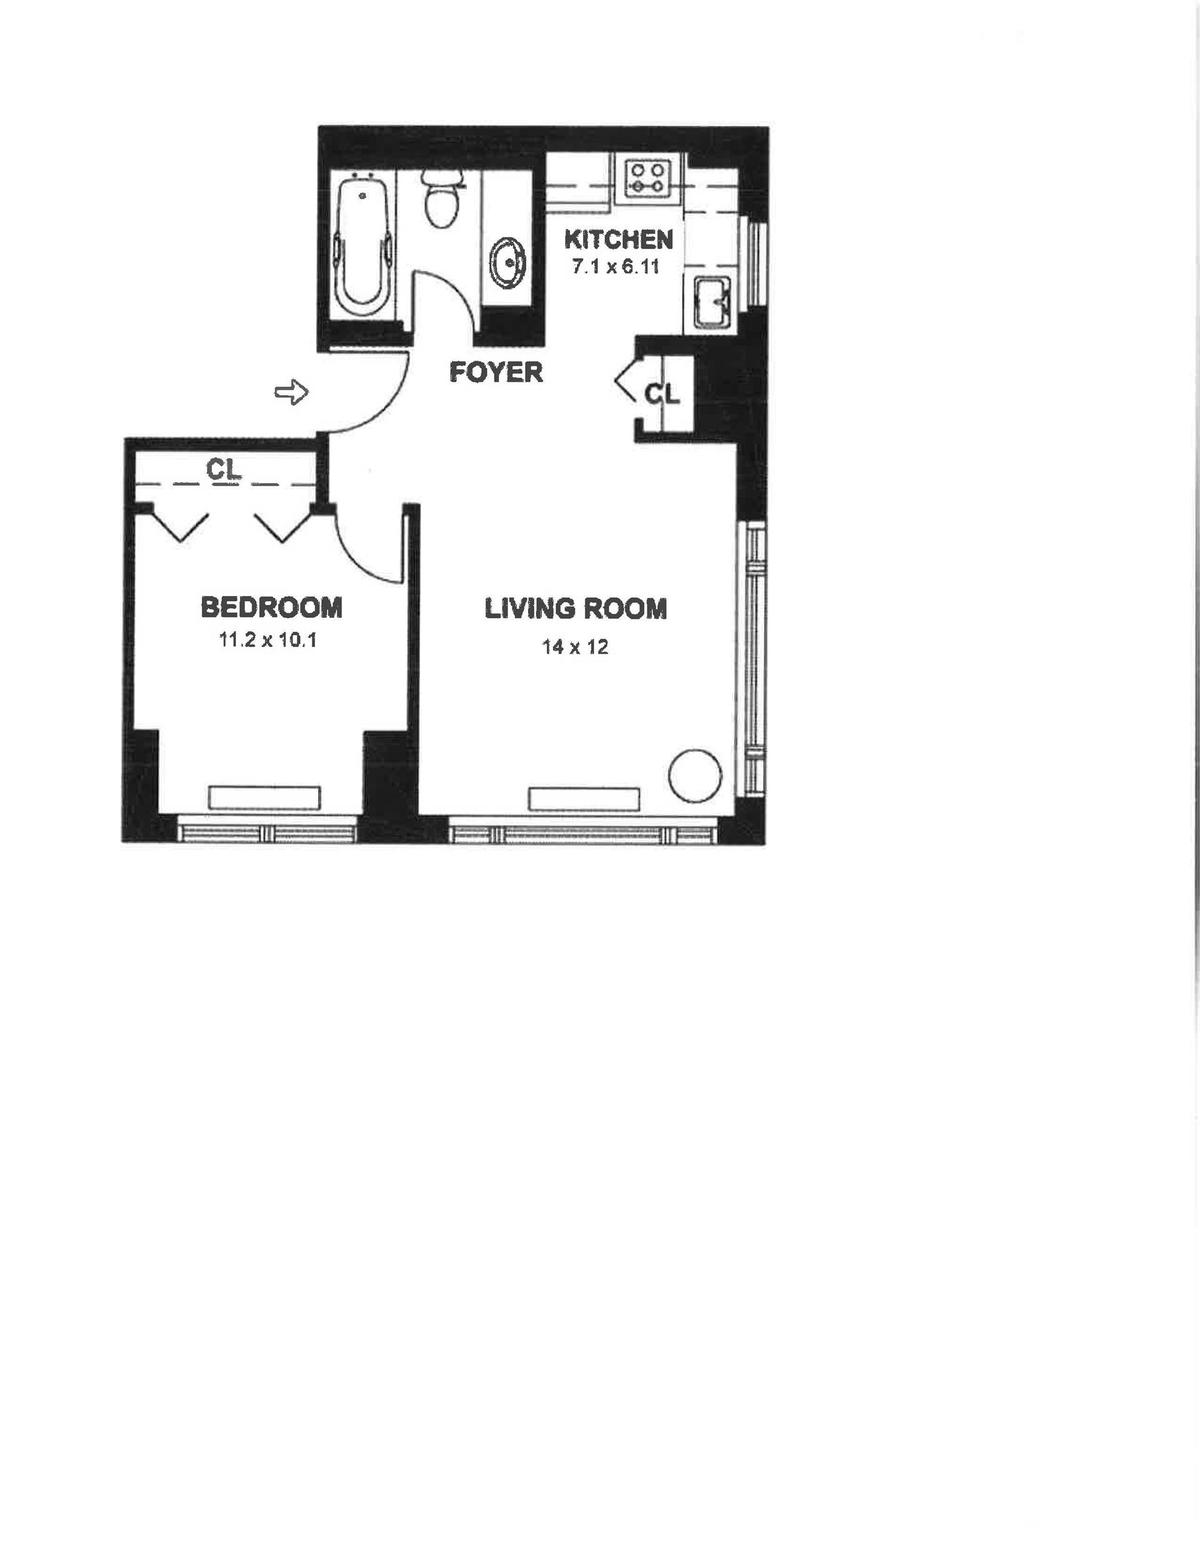 Streeteasy Central Park Place At 301 West 57th Street In